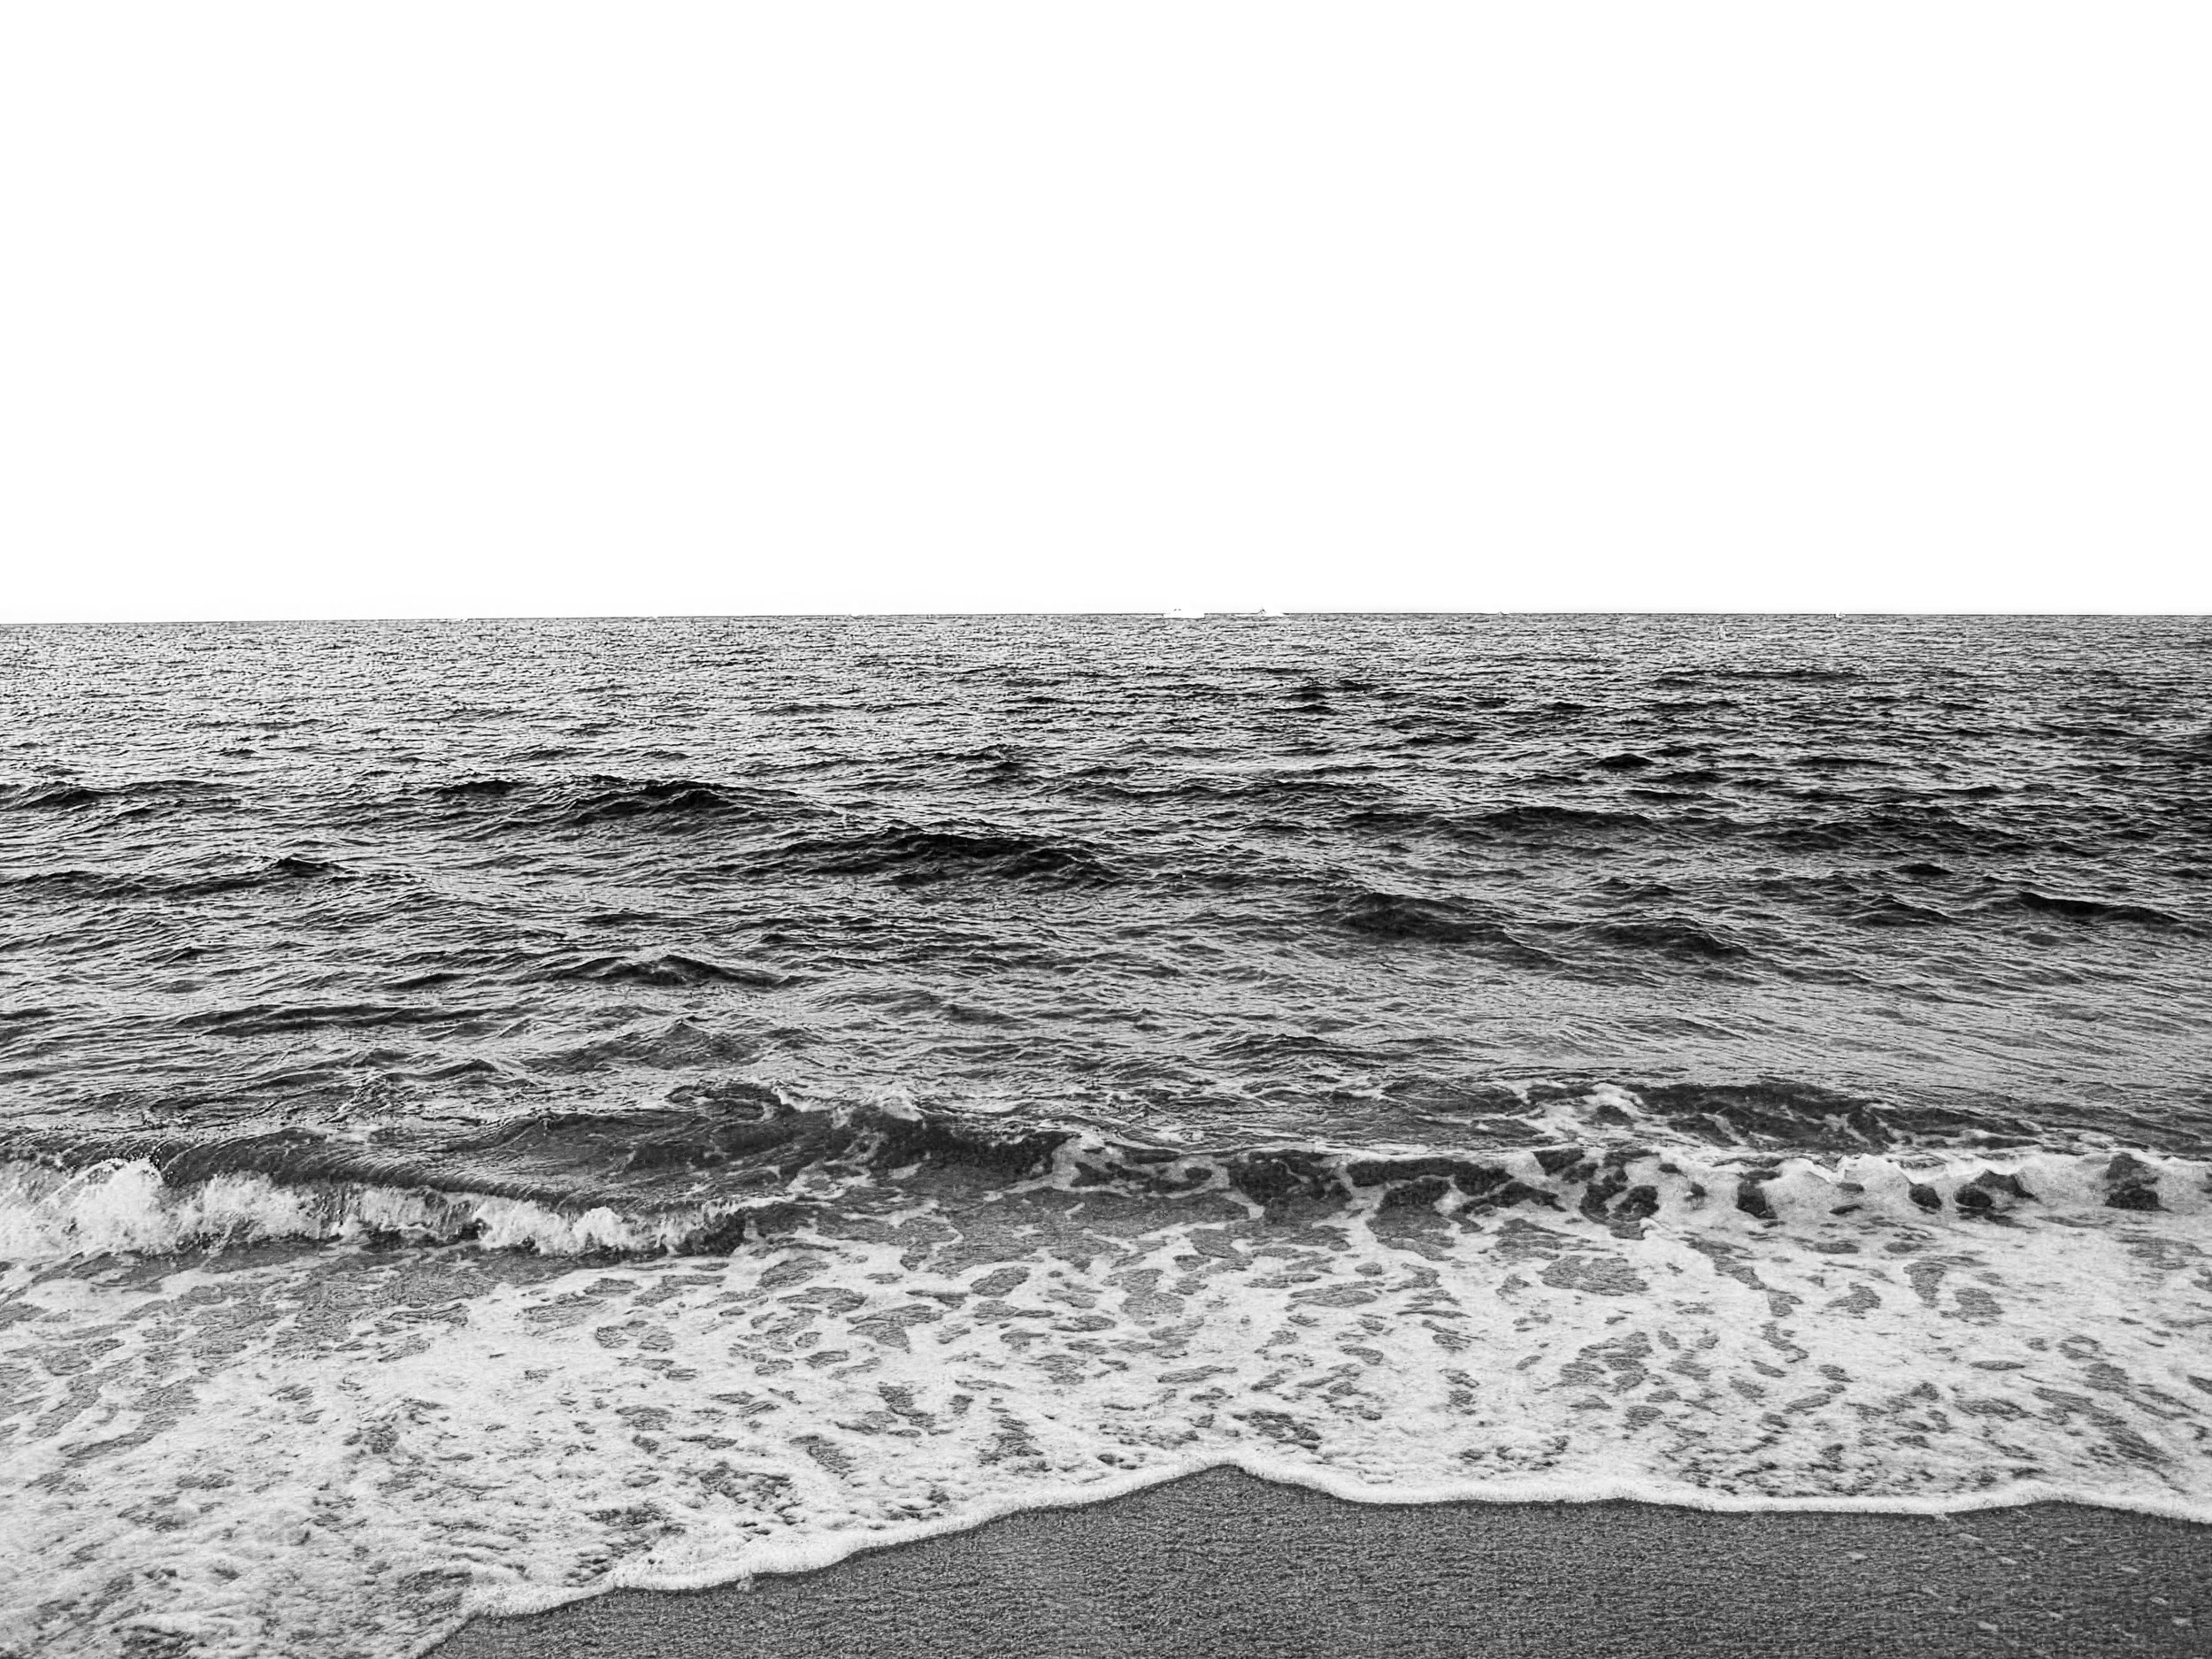 black_and_white_ocean_view_photography.JPG